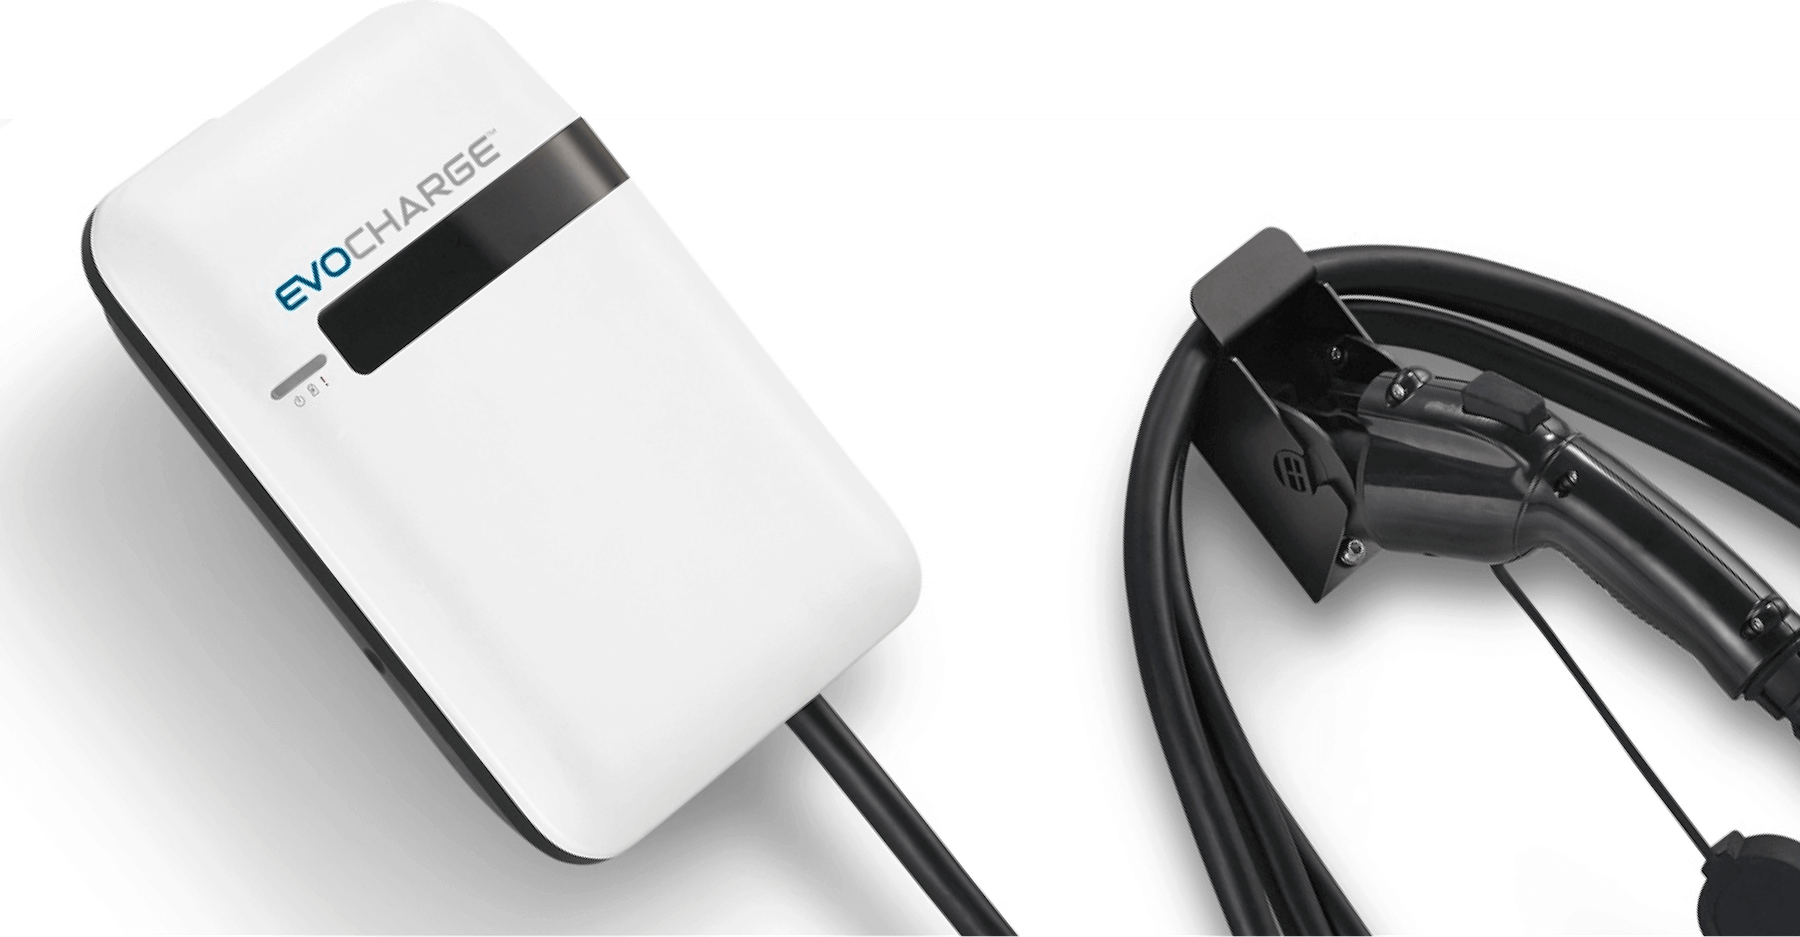 A zoomed in view of an EvoCharge charger